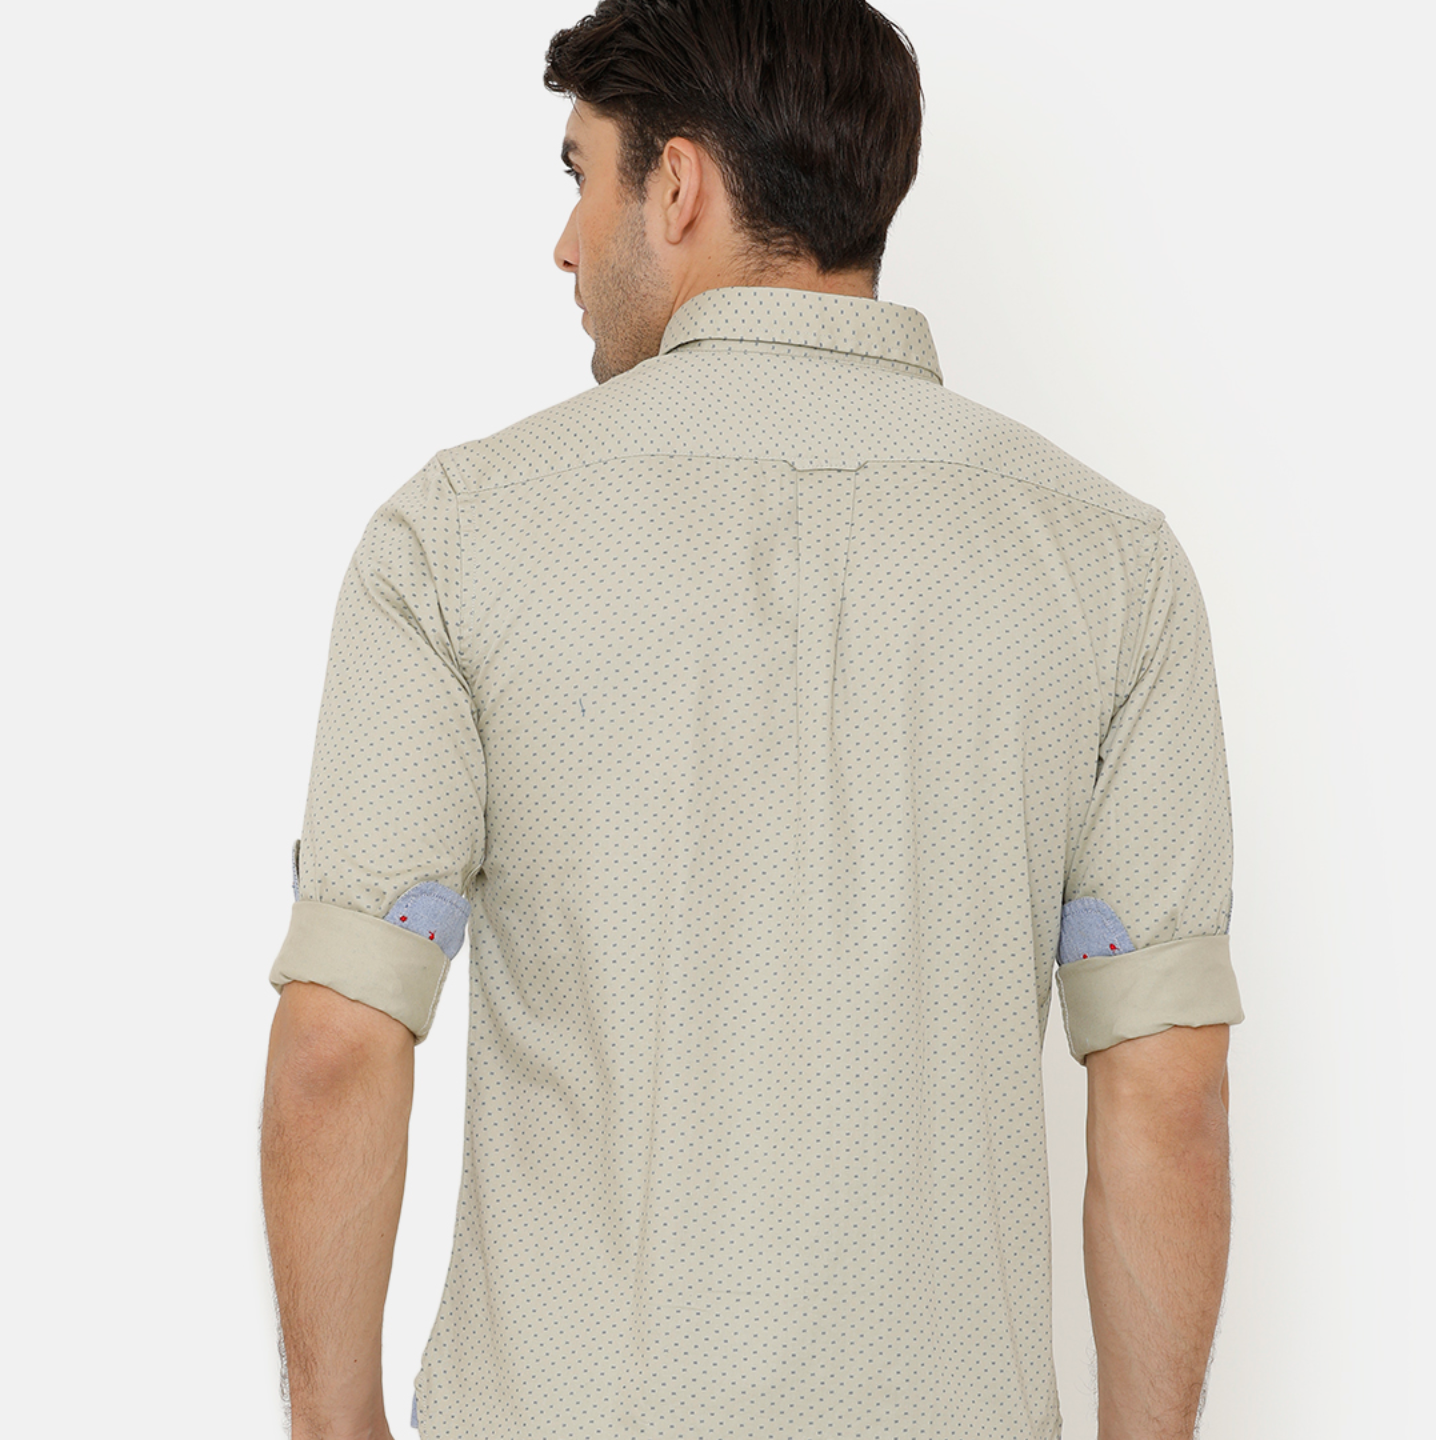 Bar Harbour Olive Printed Casual Shirt